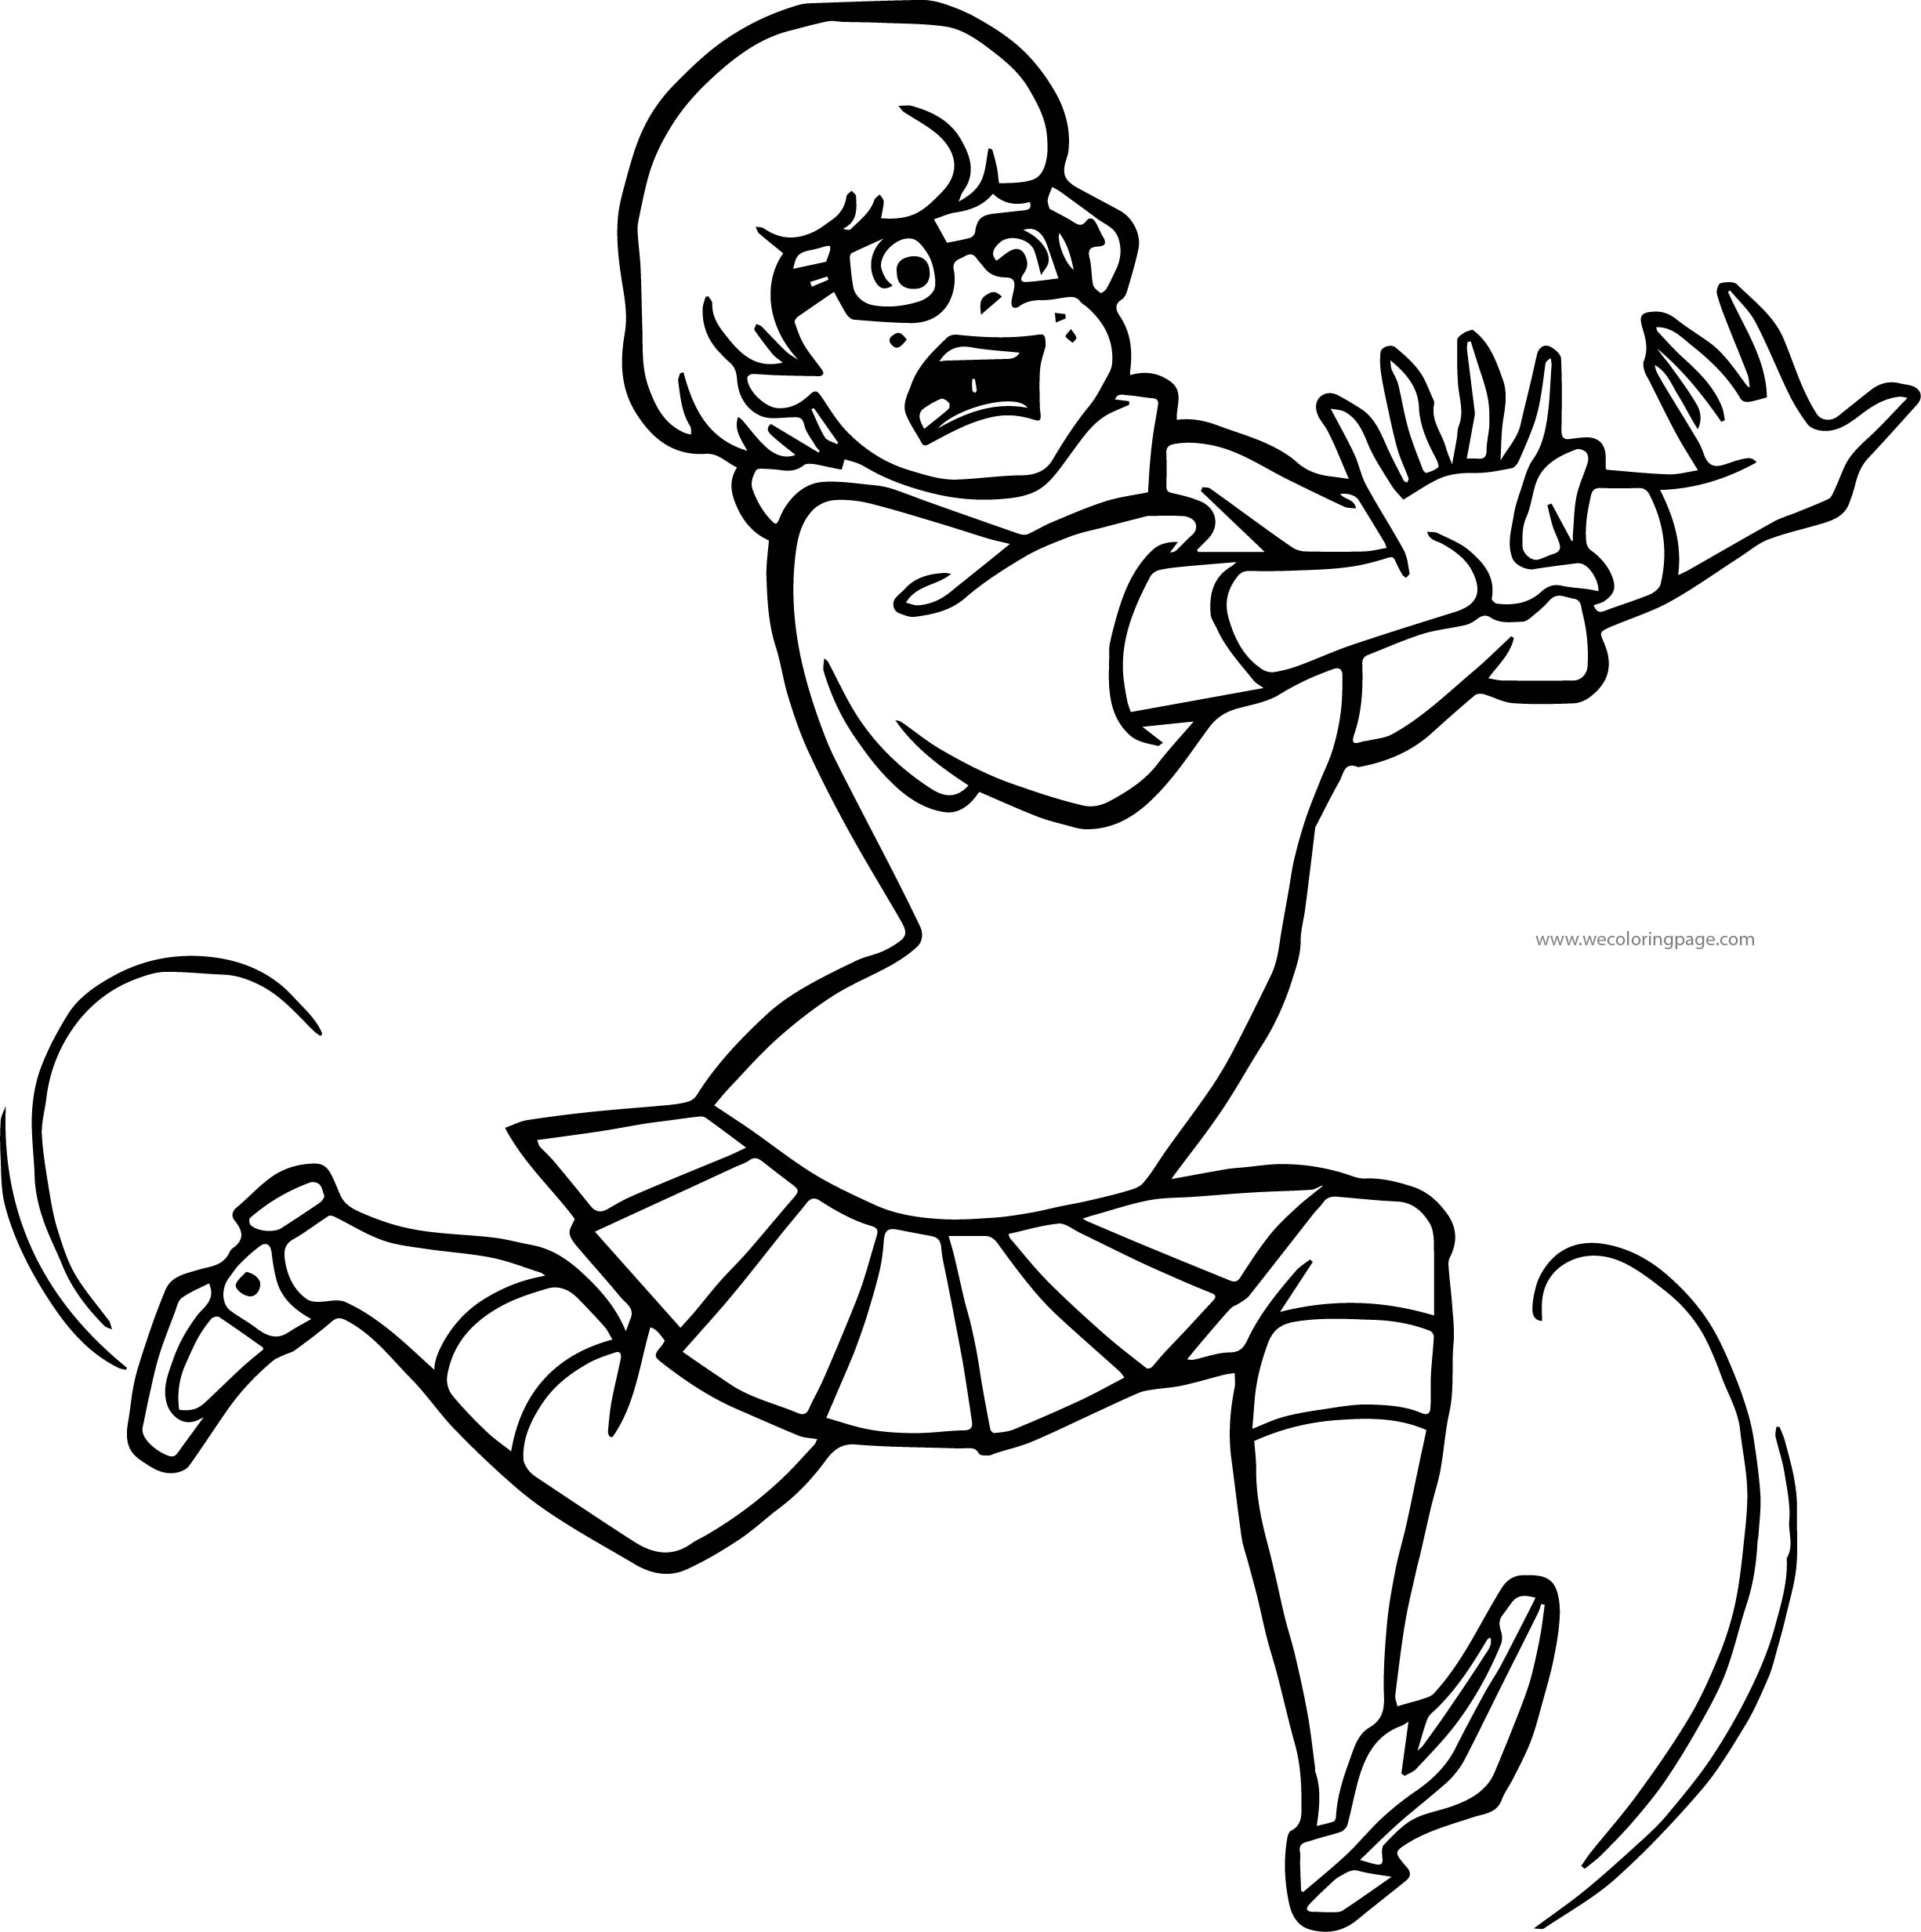 Running Velma Dinkley Scooby Doo Coloring Page